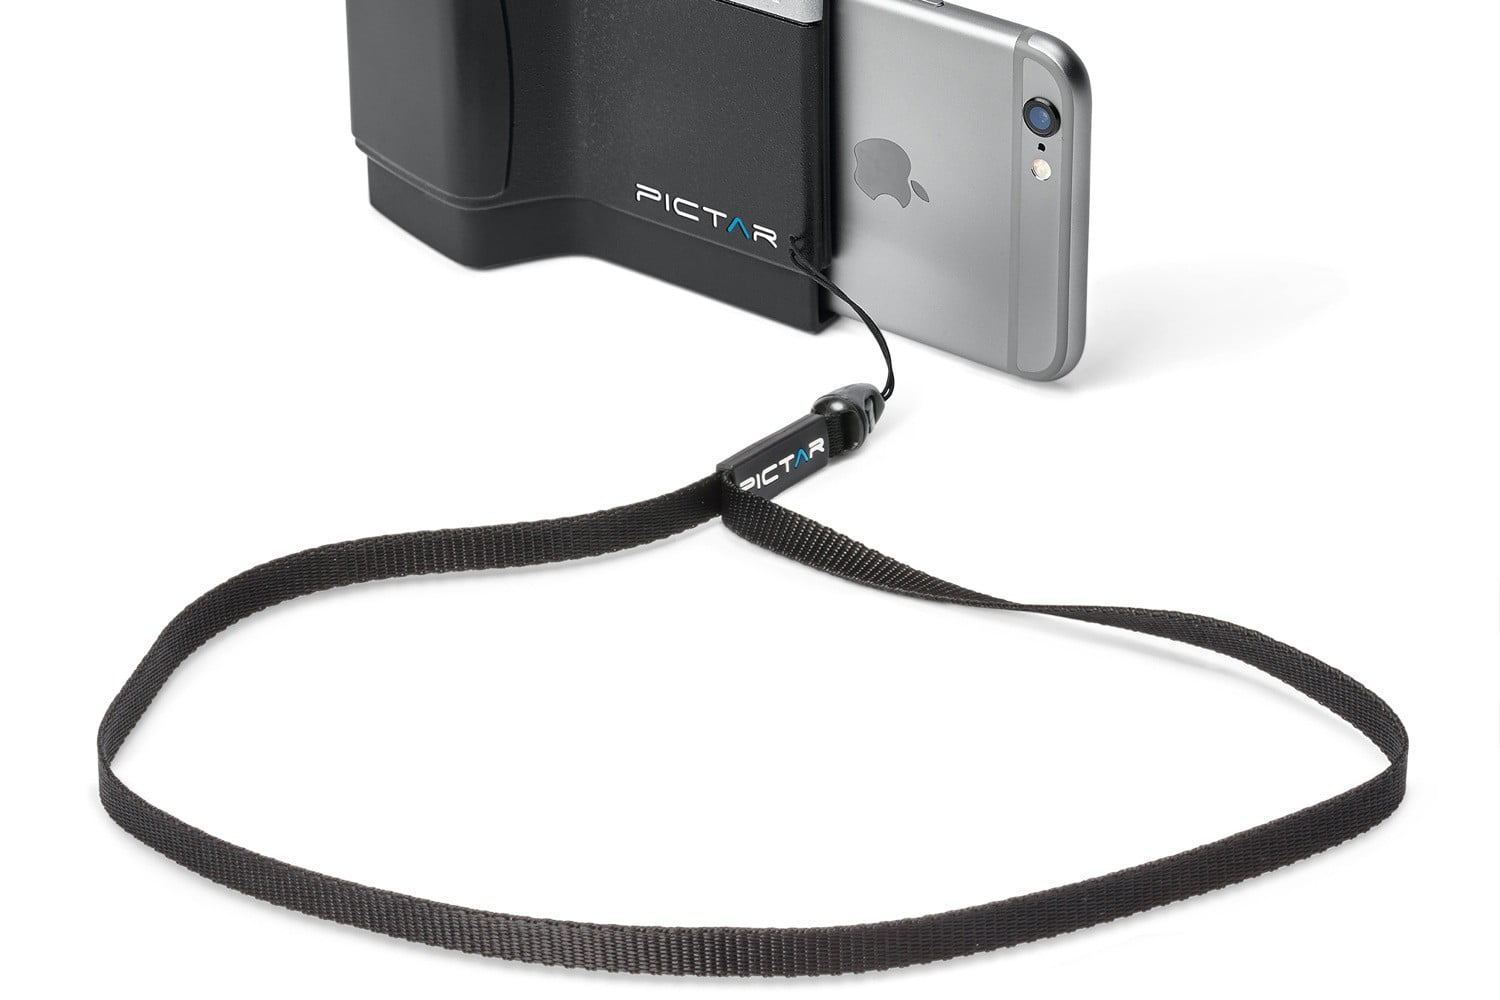 pictar iphone case provides dslr like shooting experience miggo 2